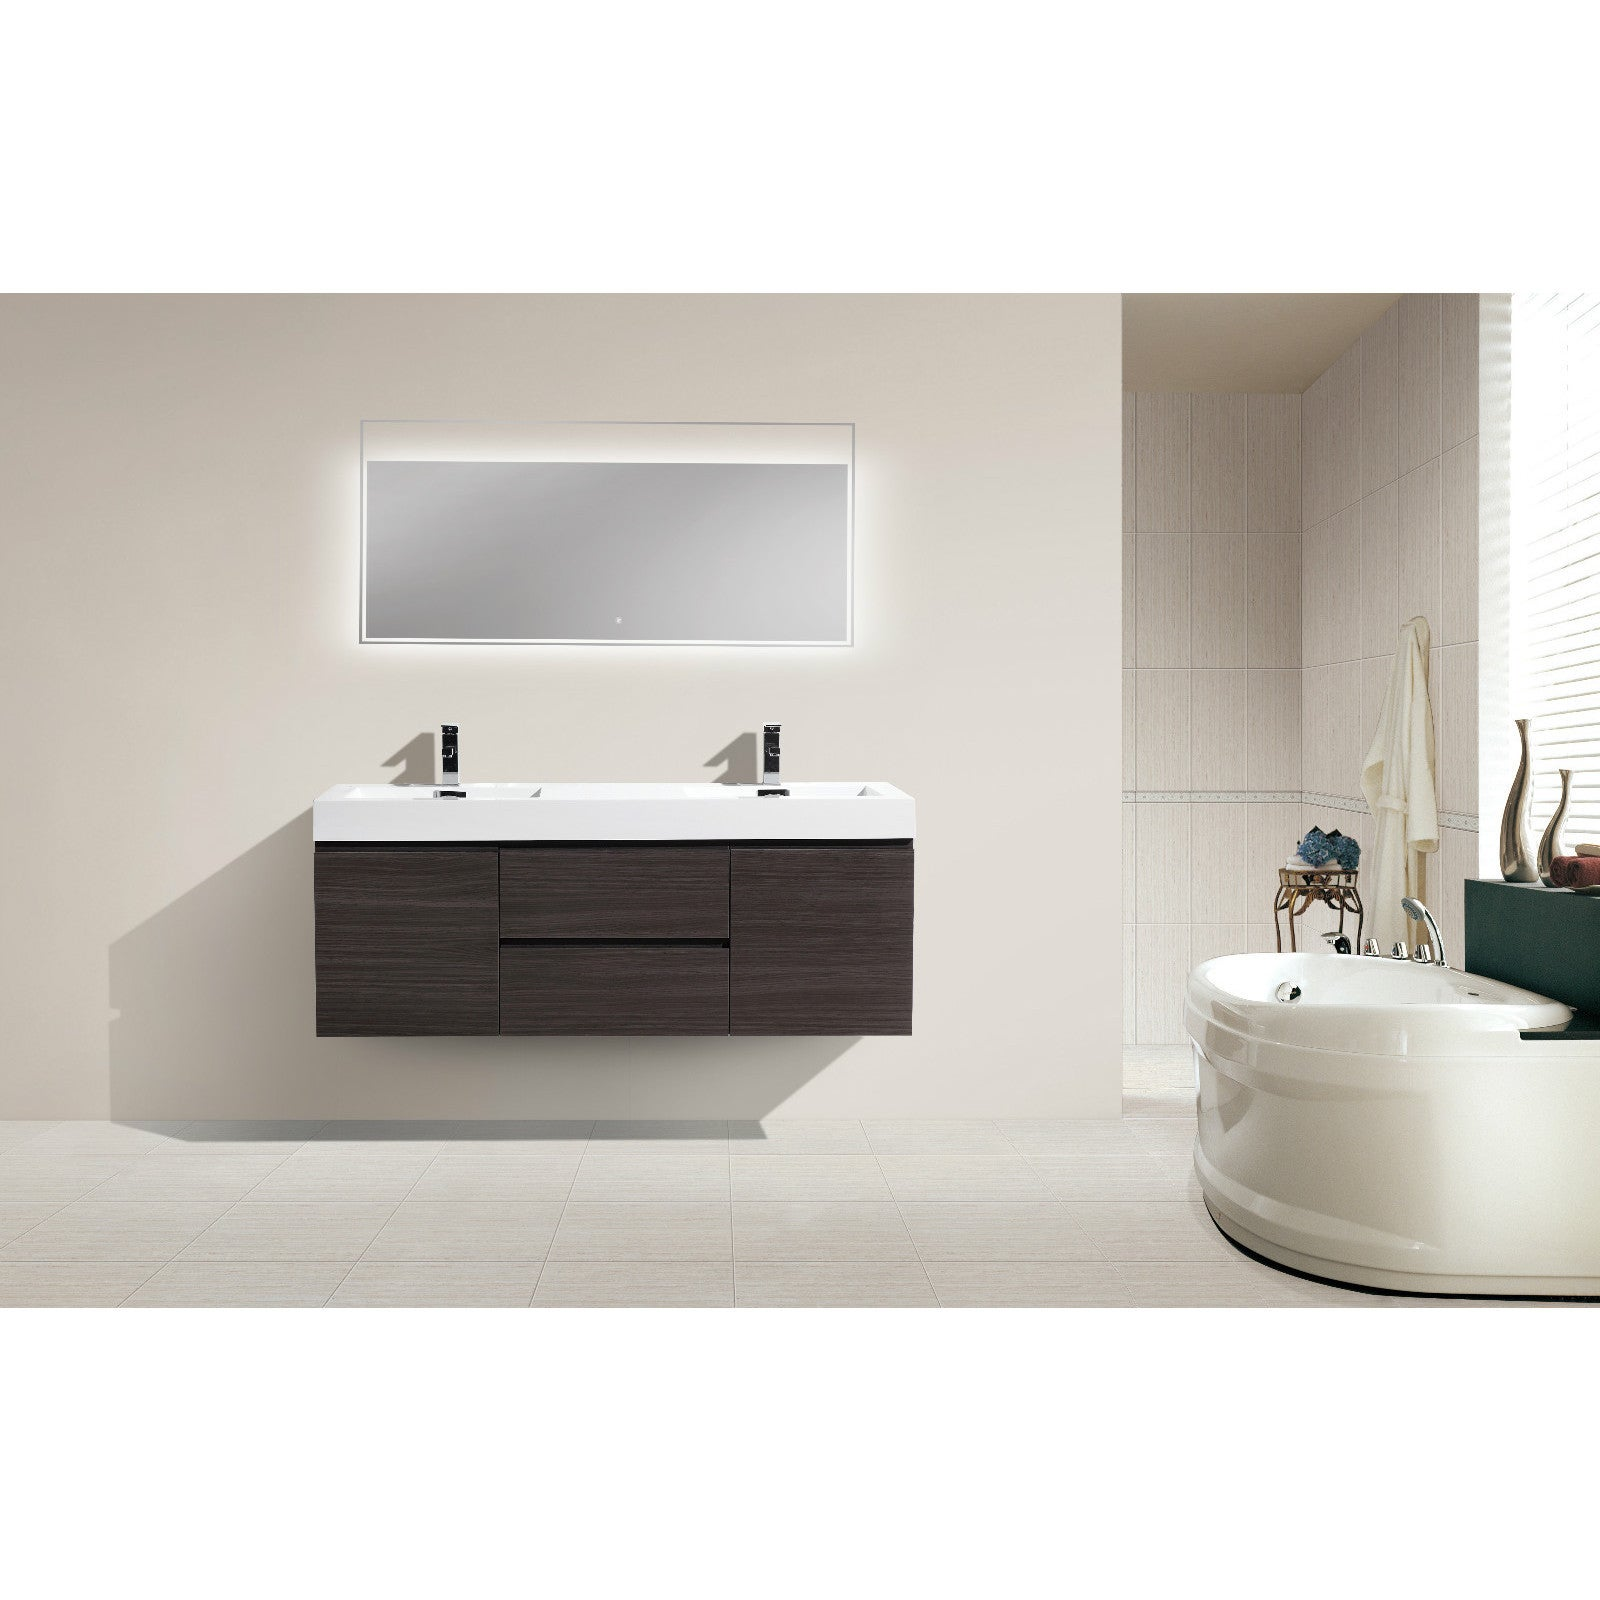 Moreno 60 Inch Wall Mounted Reinforced Acrylic Double Sink Bathroom Vanity